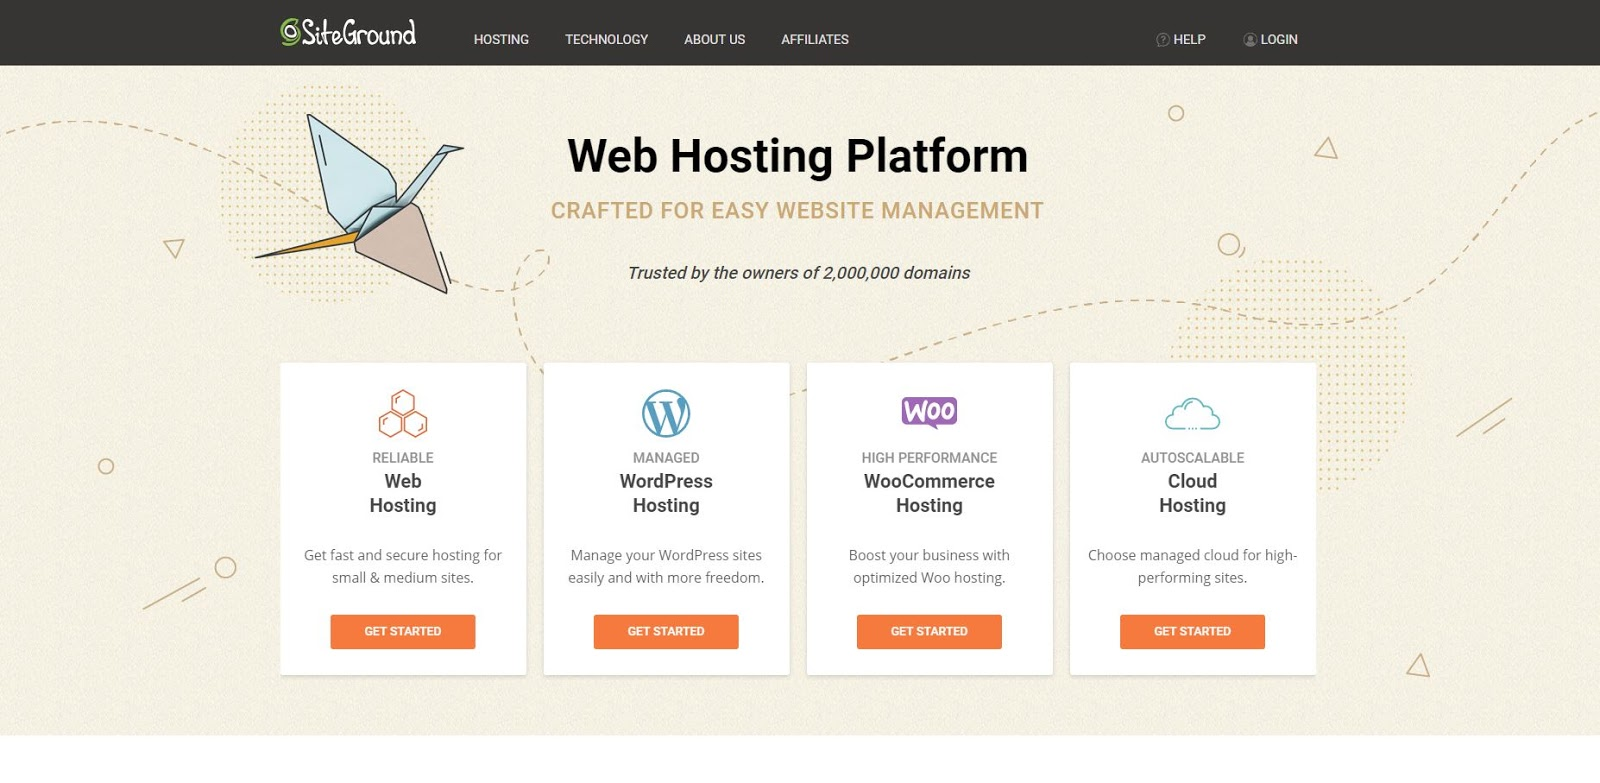 SiteGround: Web Hosting Services Crafted with Care